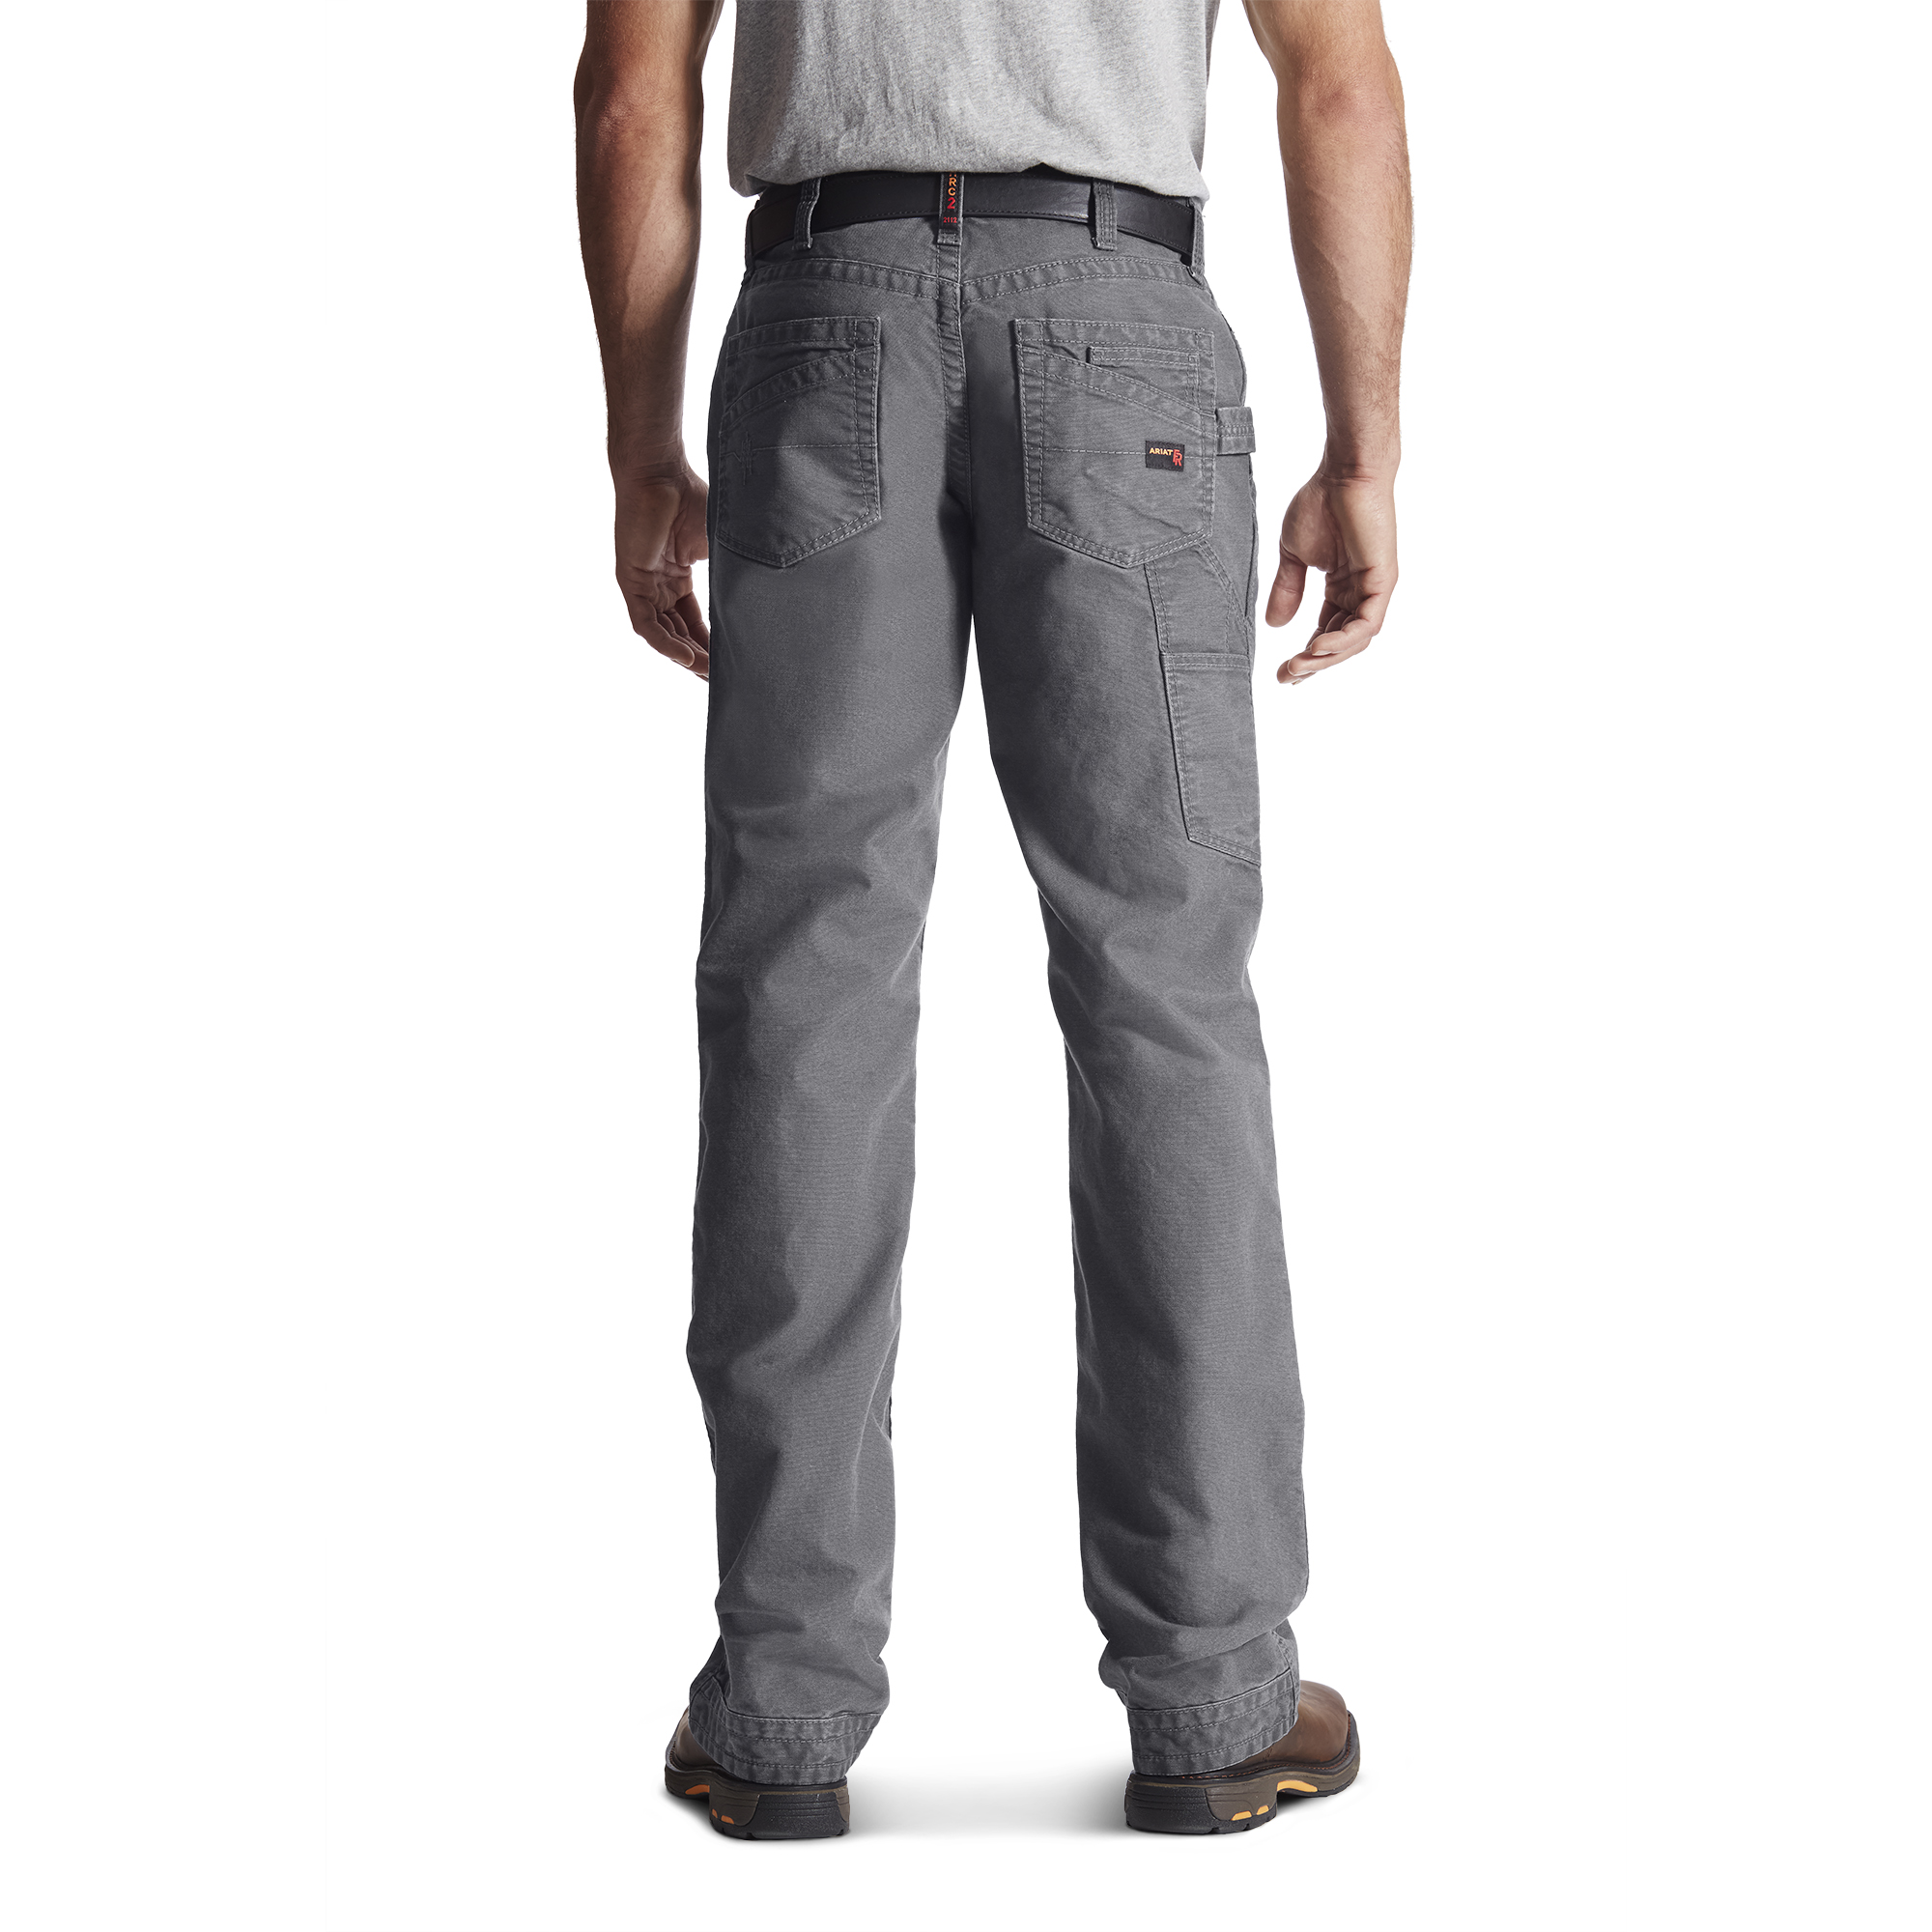 6a907b2181a8 FR M4 Workhorse Carpenter Pants - Mettry